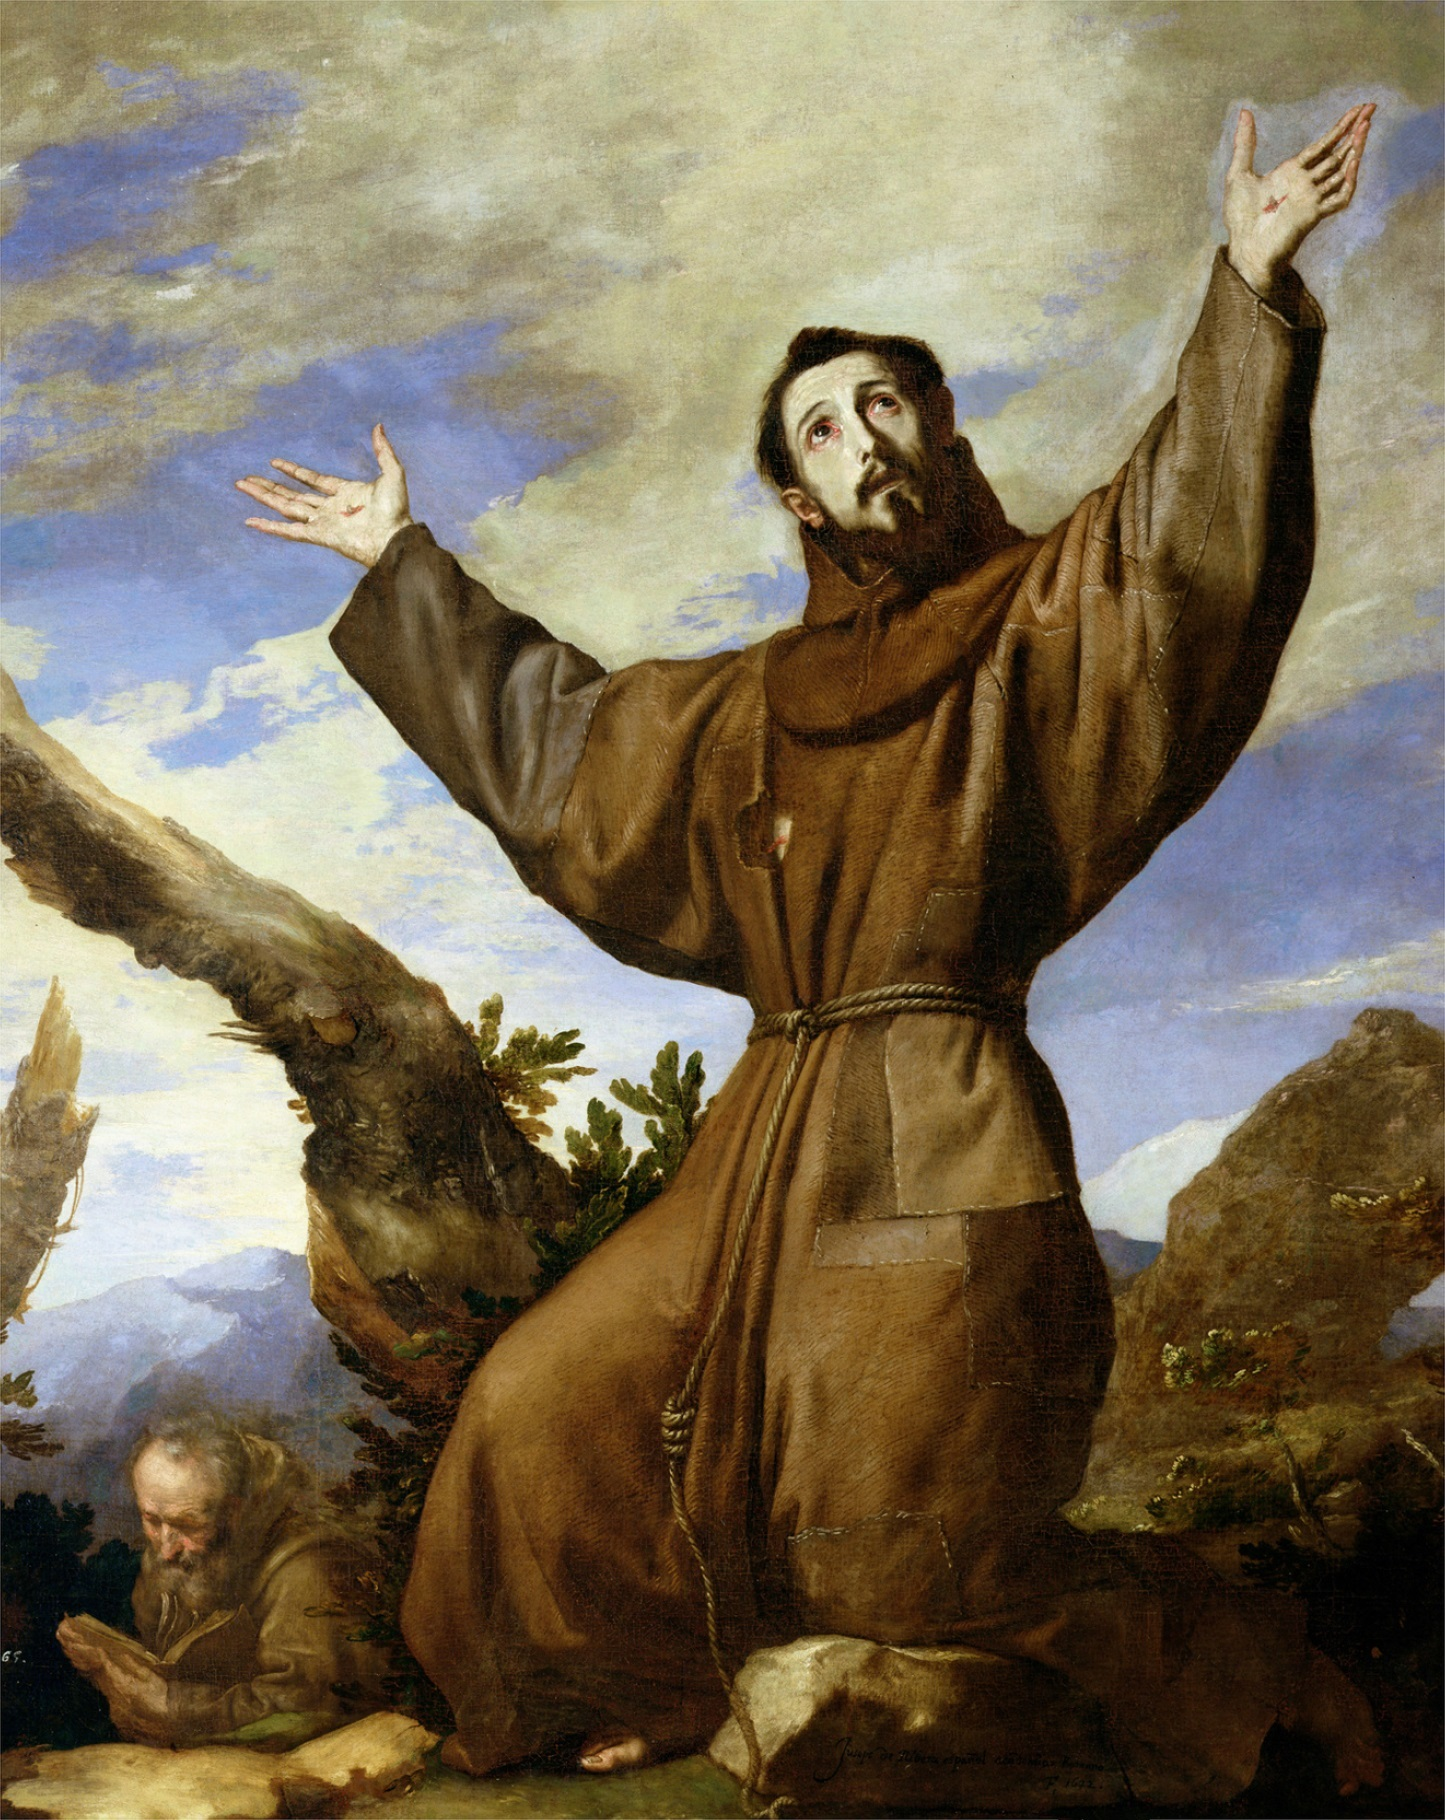 Saint Francis of Assisi by Jusepe de Ribera. Wikimedia Commons